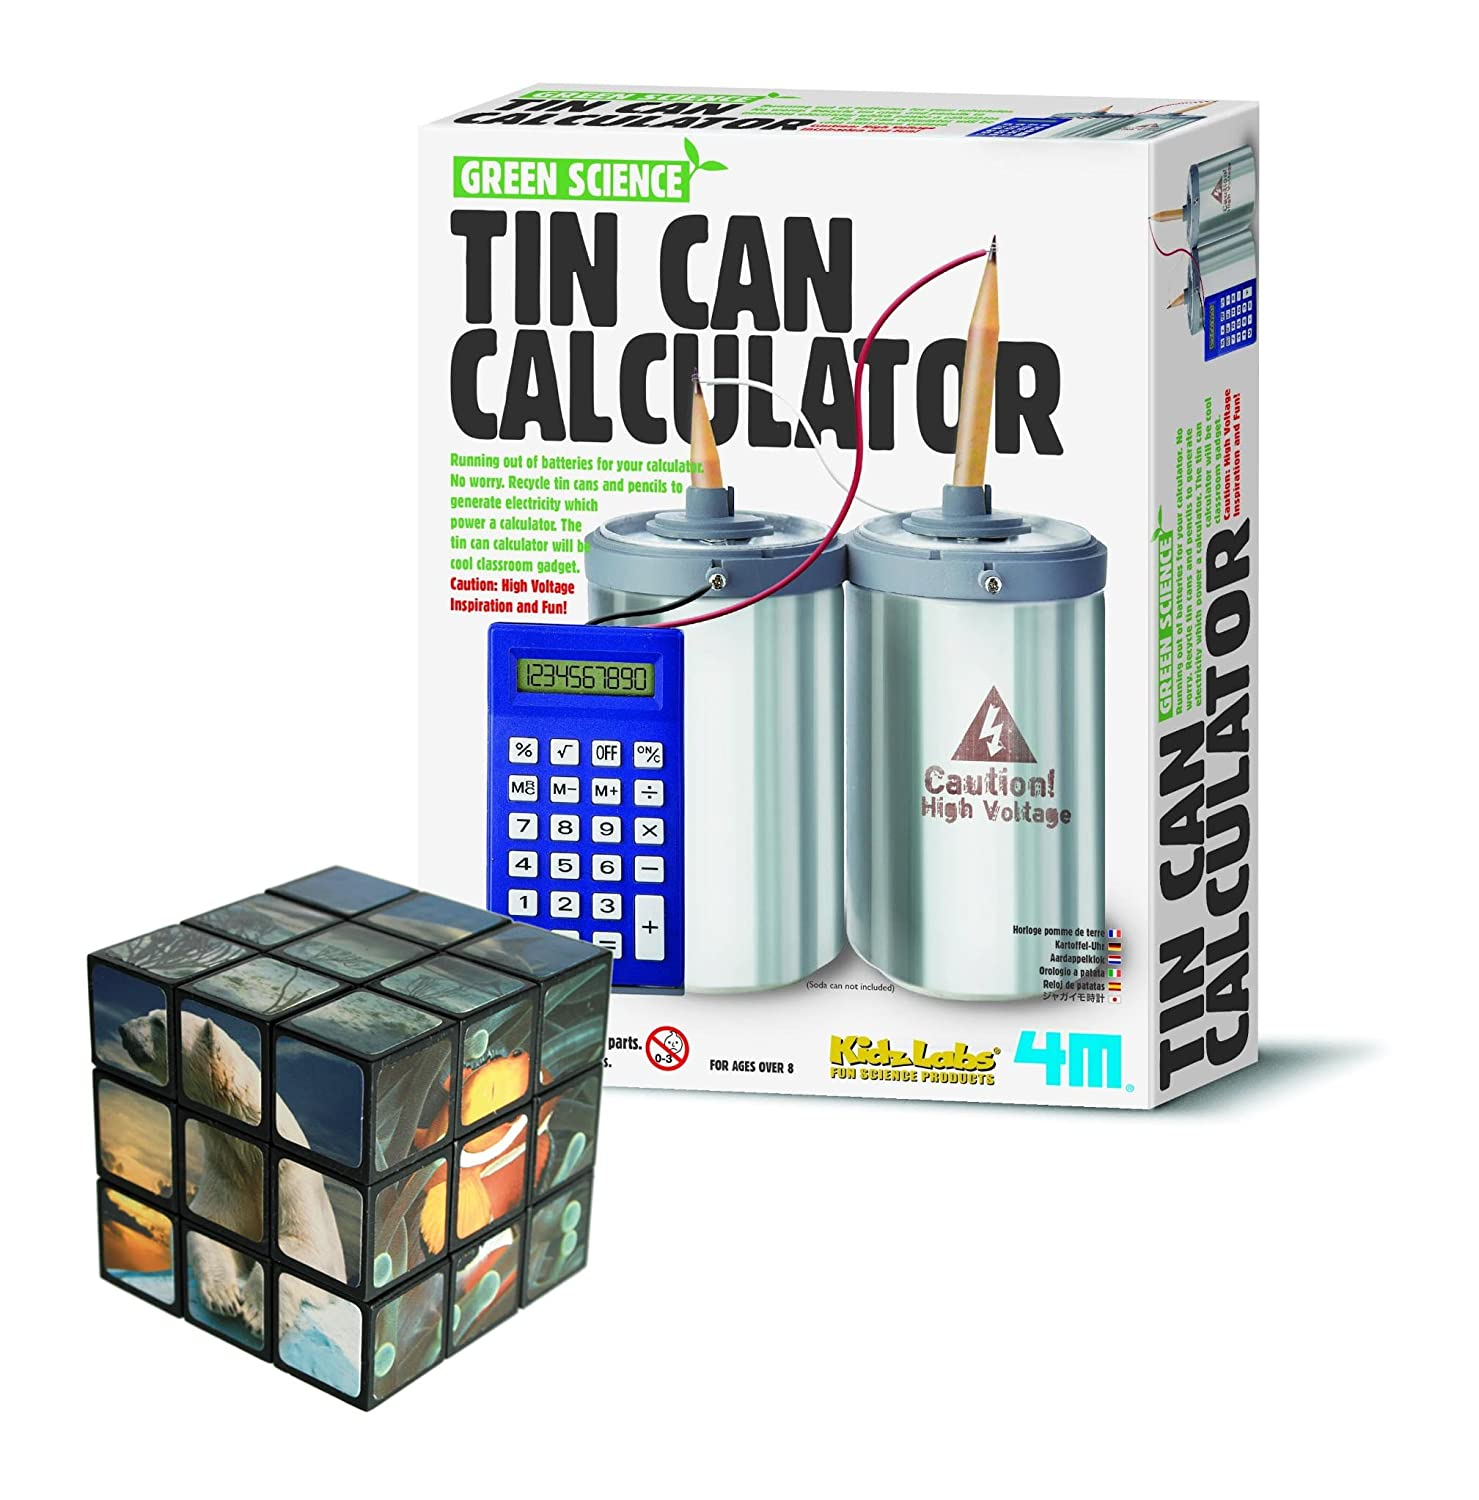 Belair Gifts Number One Selling Creative Activity Fun Educational Idea for Children Age 8+ Build You Own Tin Can Calculator With Problem Solving Sealife Cube